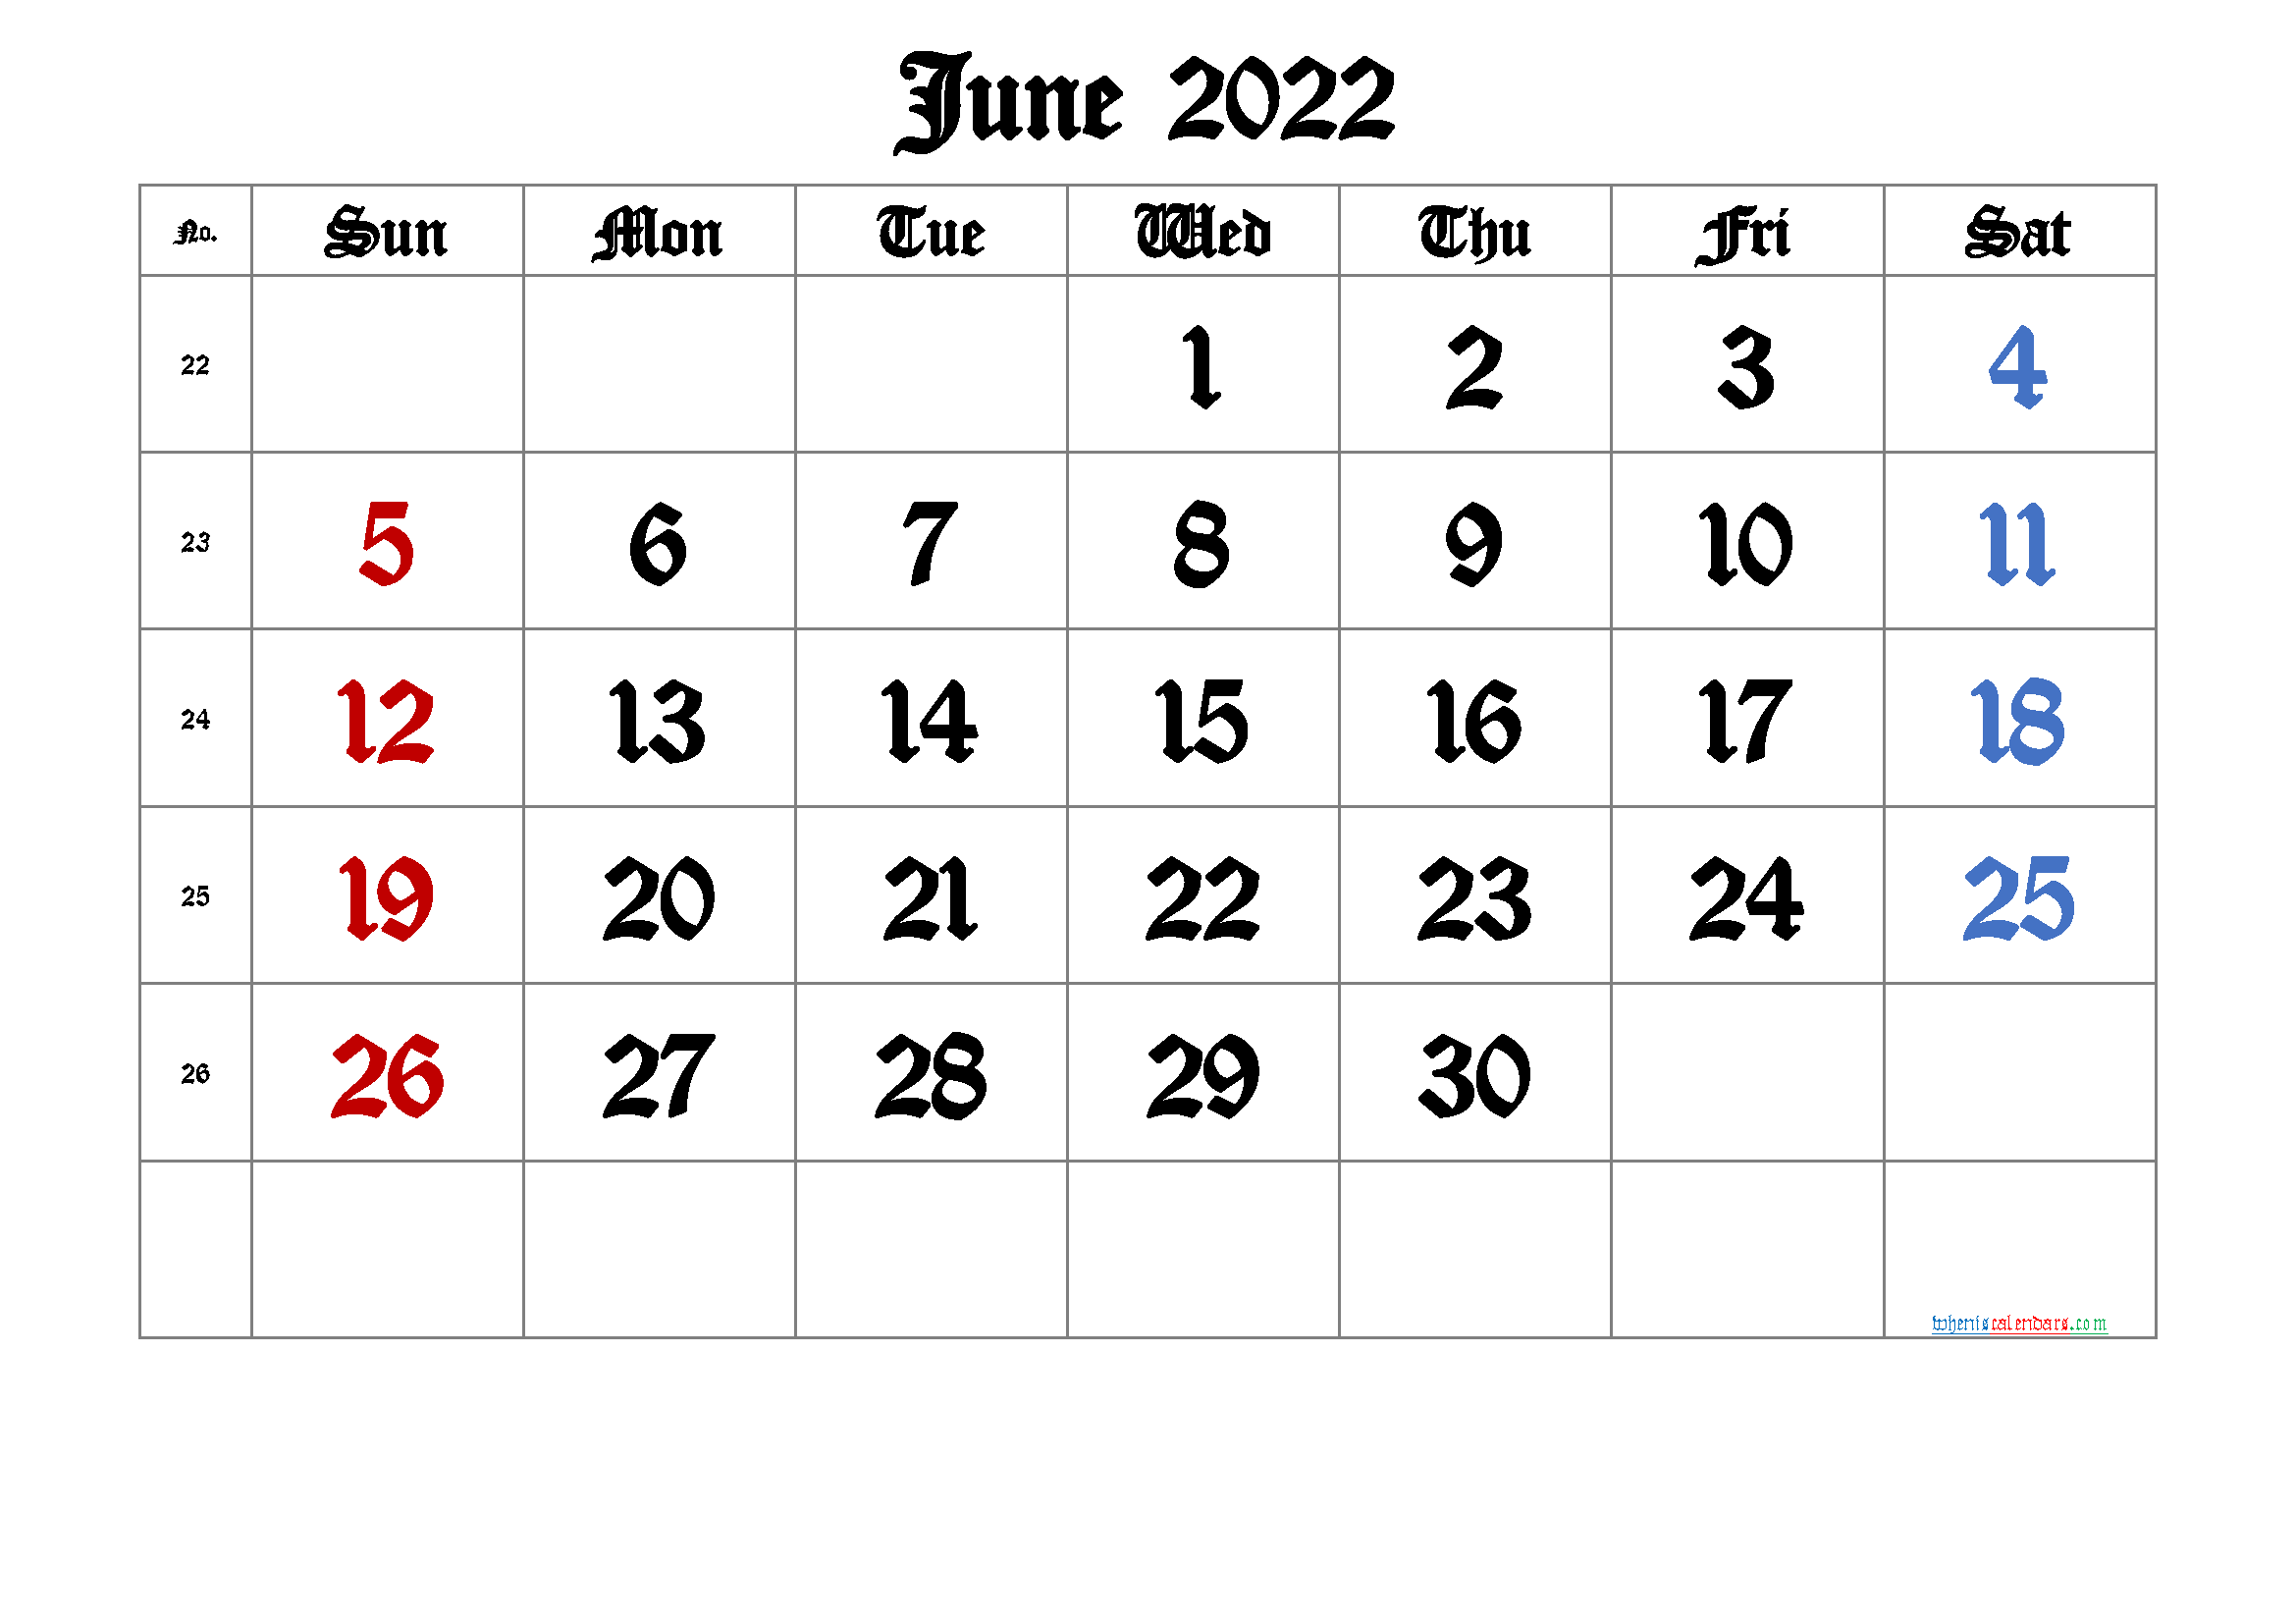 June 2022 Printable Calendar with Week Numbers